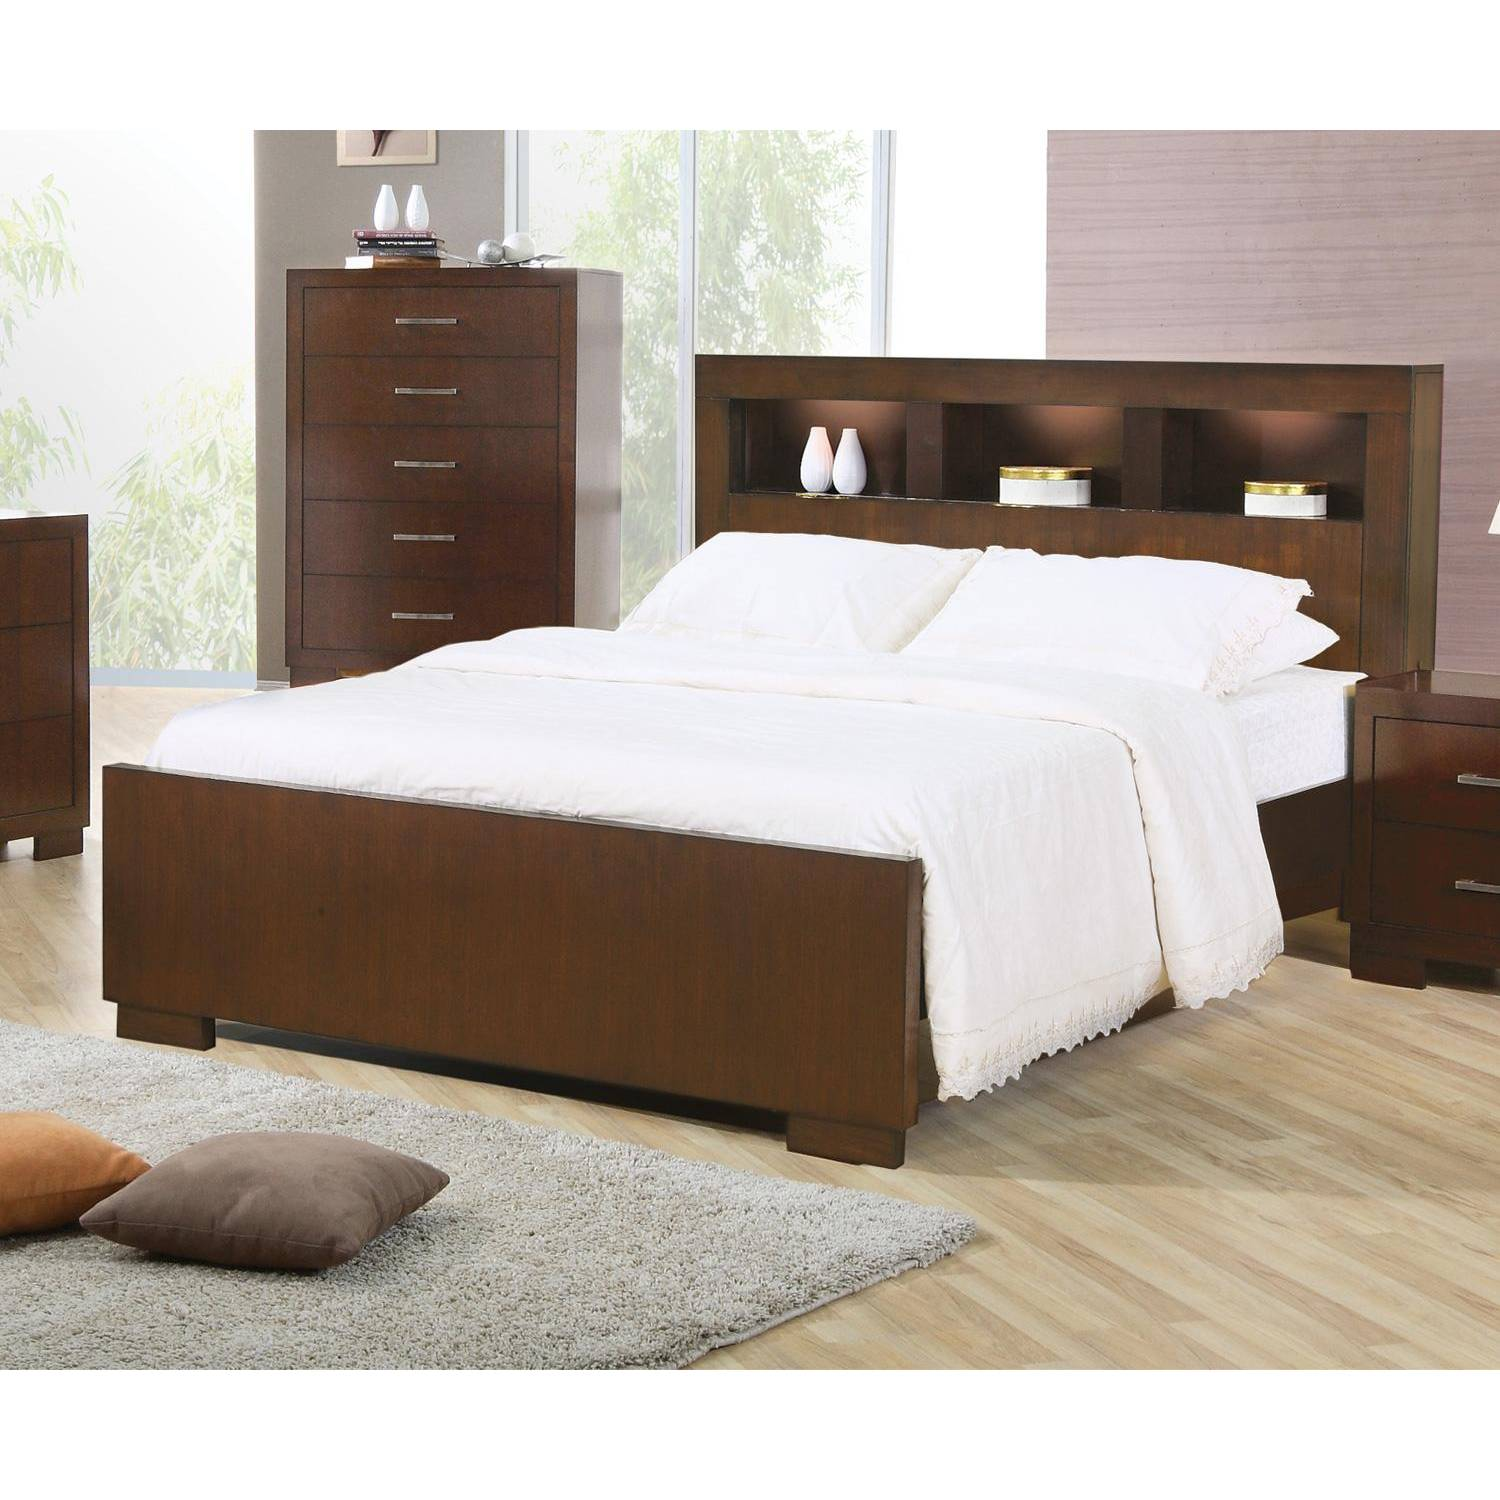 Contemporary Modern Beds: Jessica King Contemporary Bed With Storage Headboard And